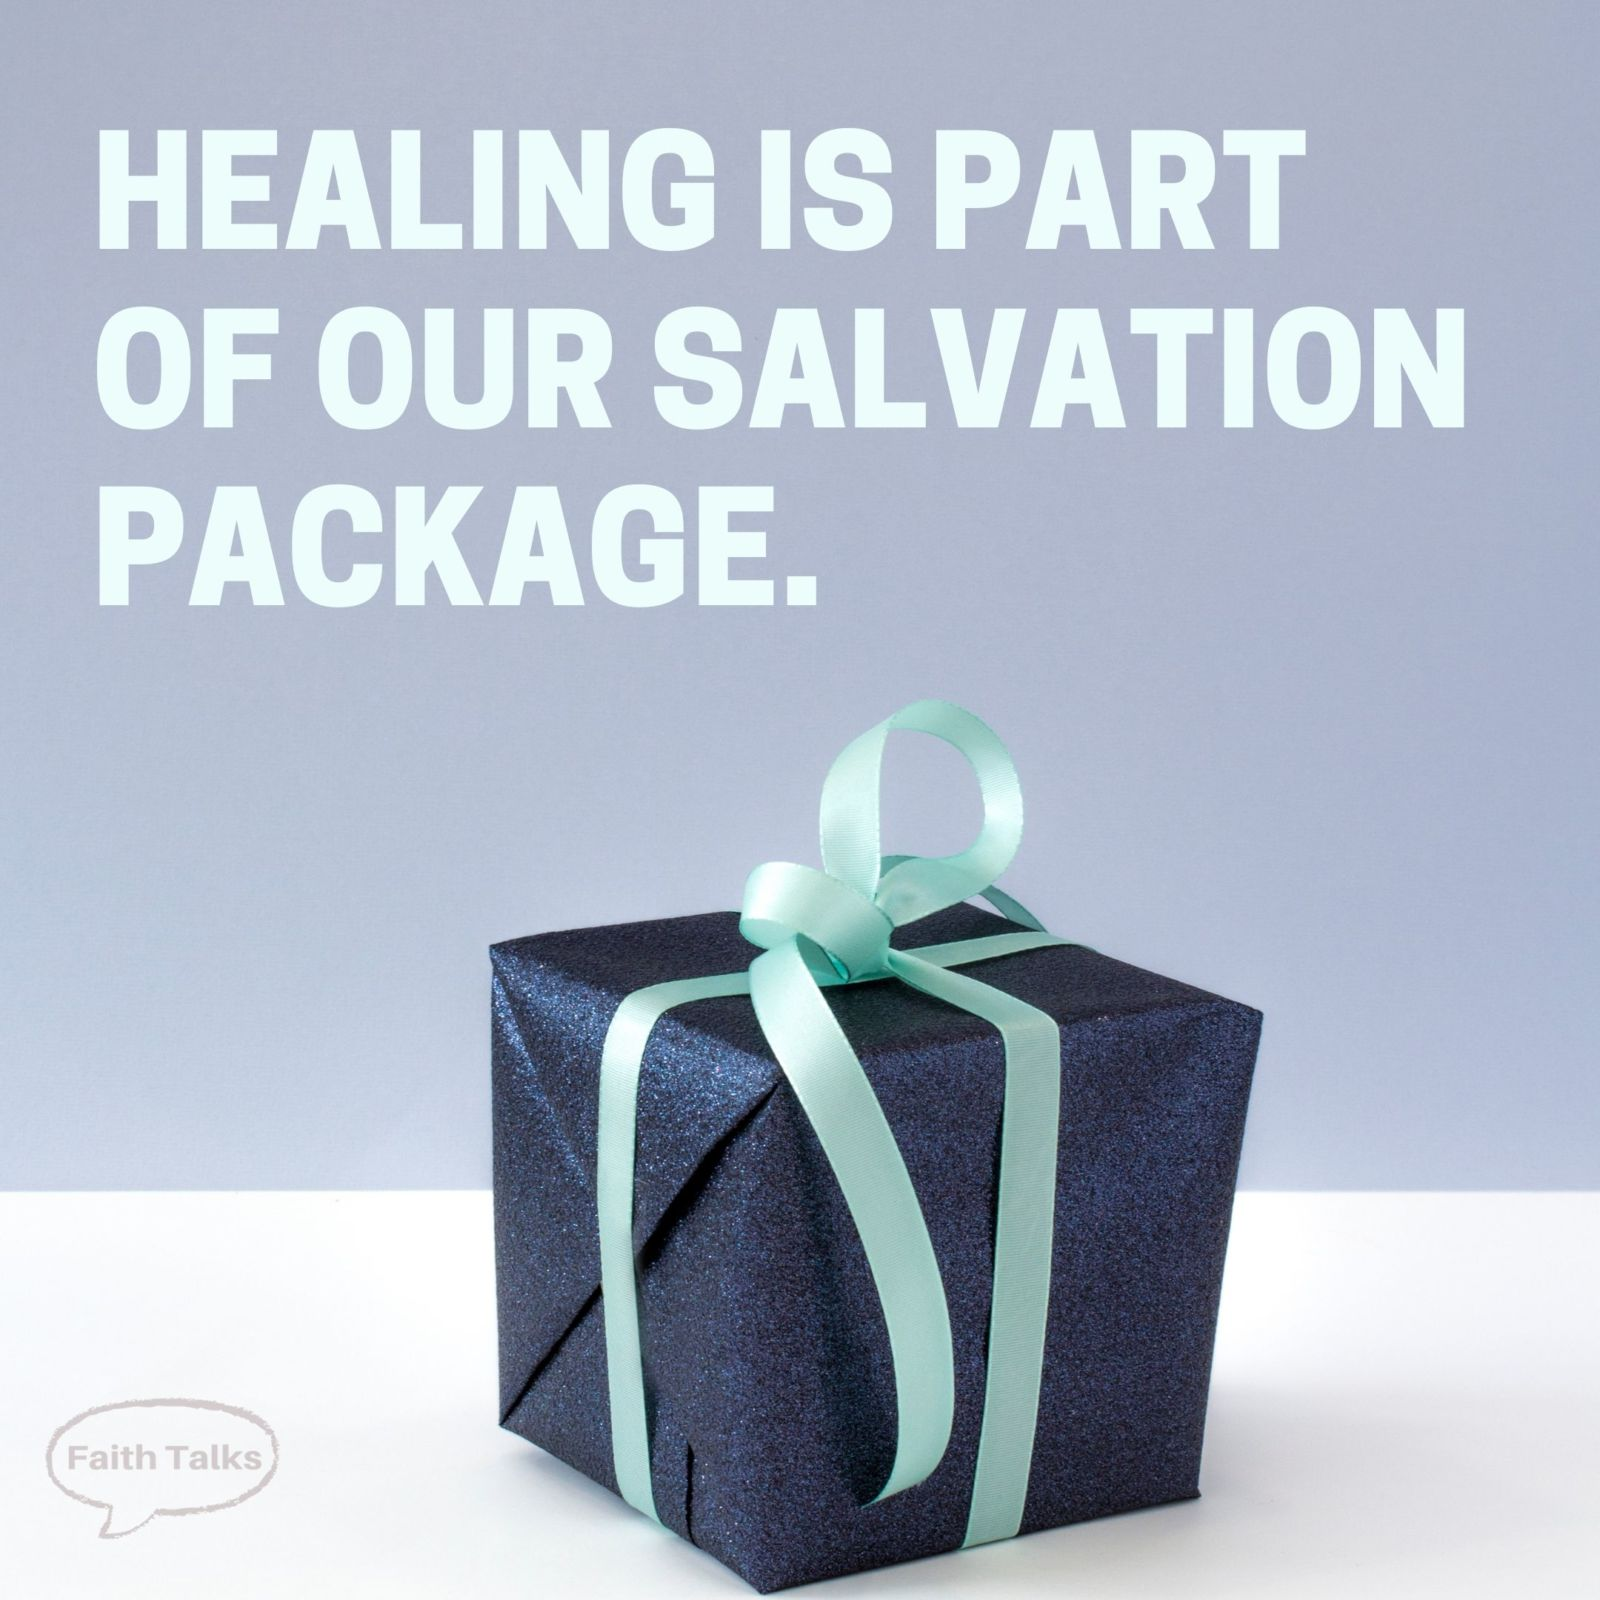 Healing is part of our salvation package!